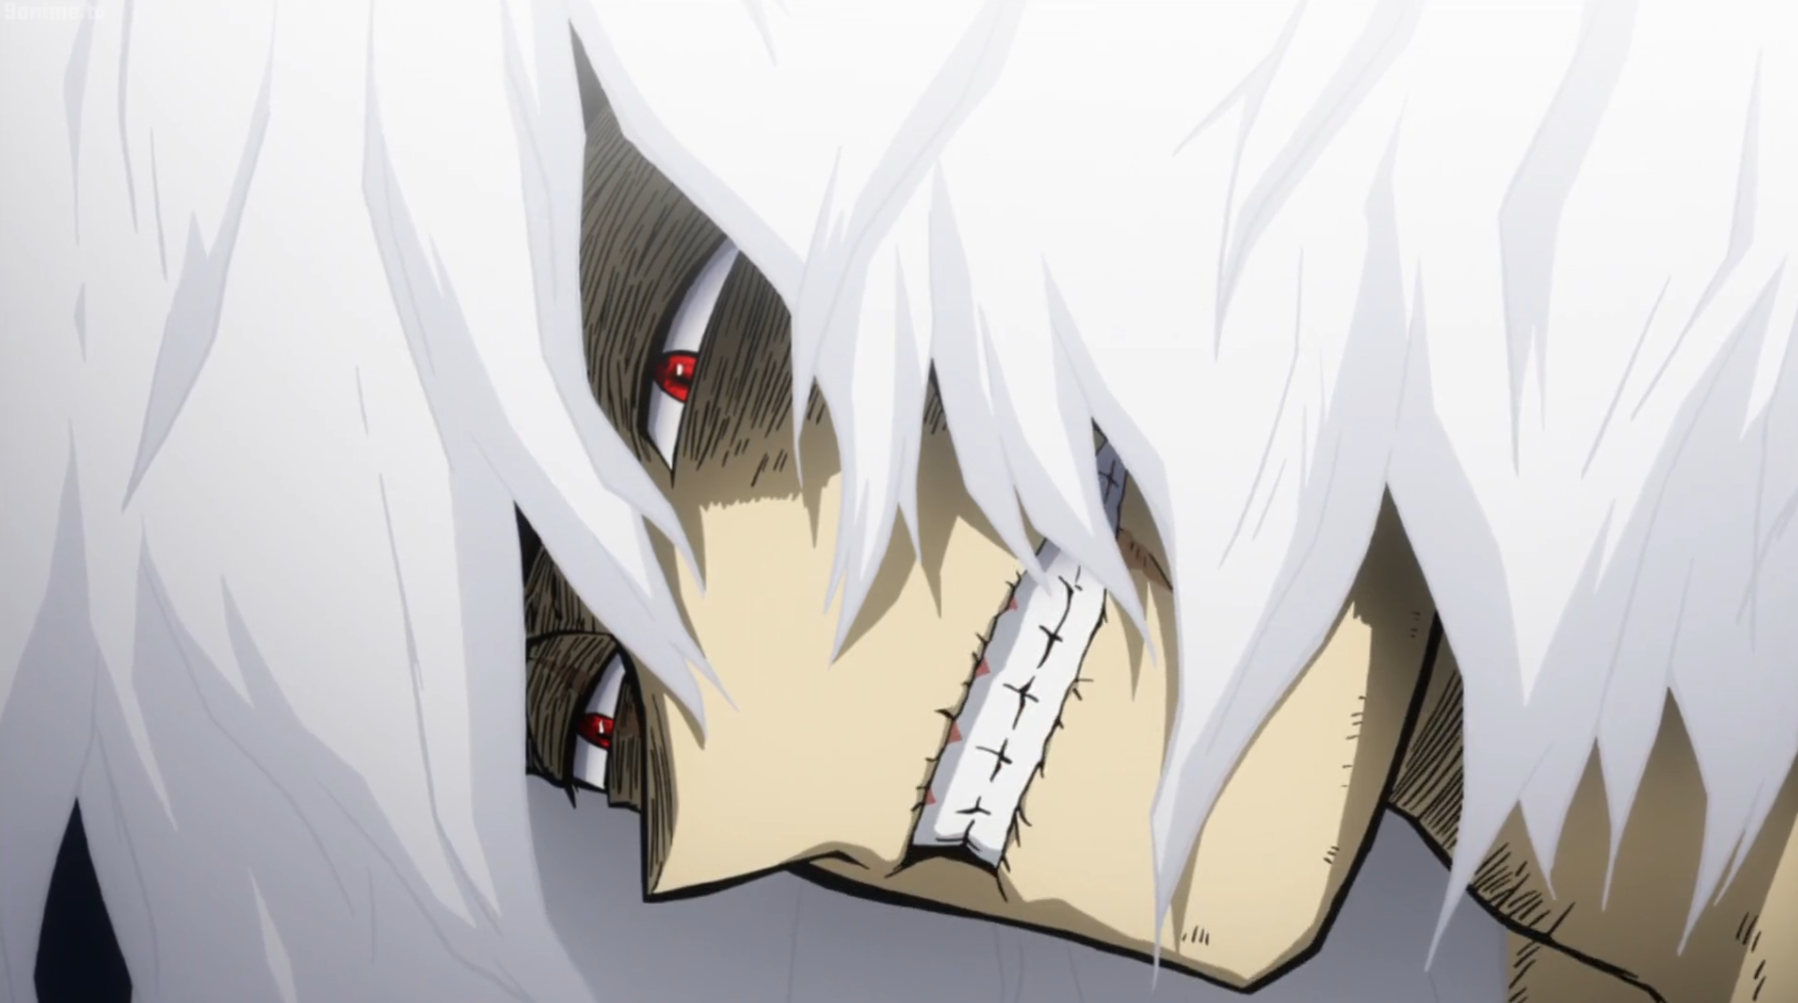 Featured image for My Hero Academia Season 5, Episode 25: Class 1-A reaches new heights